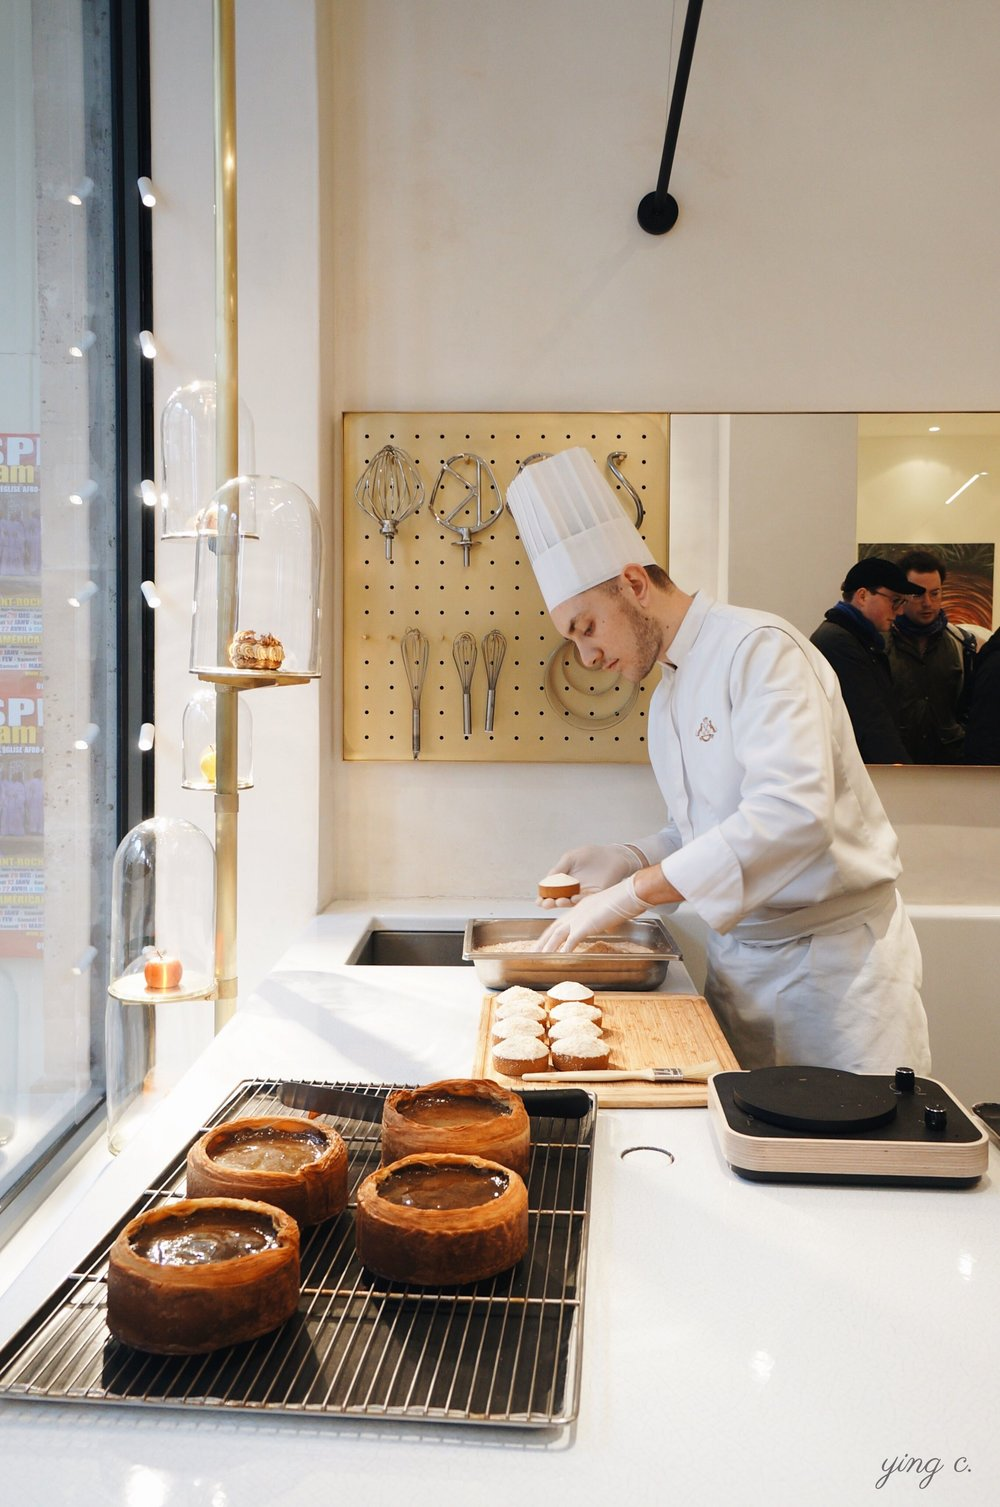 The pastry chef in action on the spot.